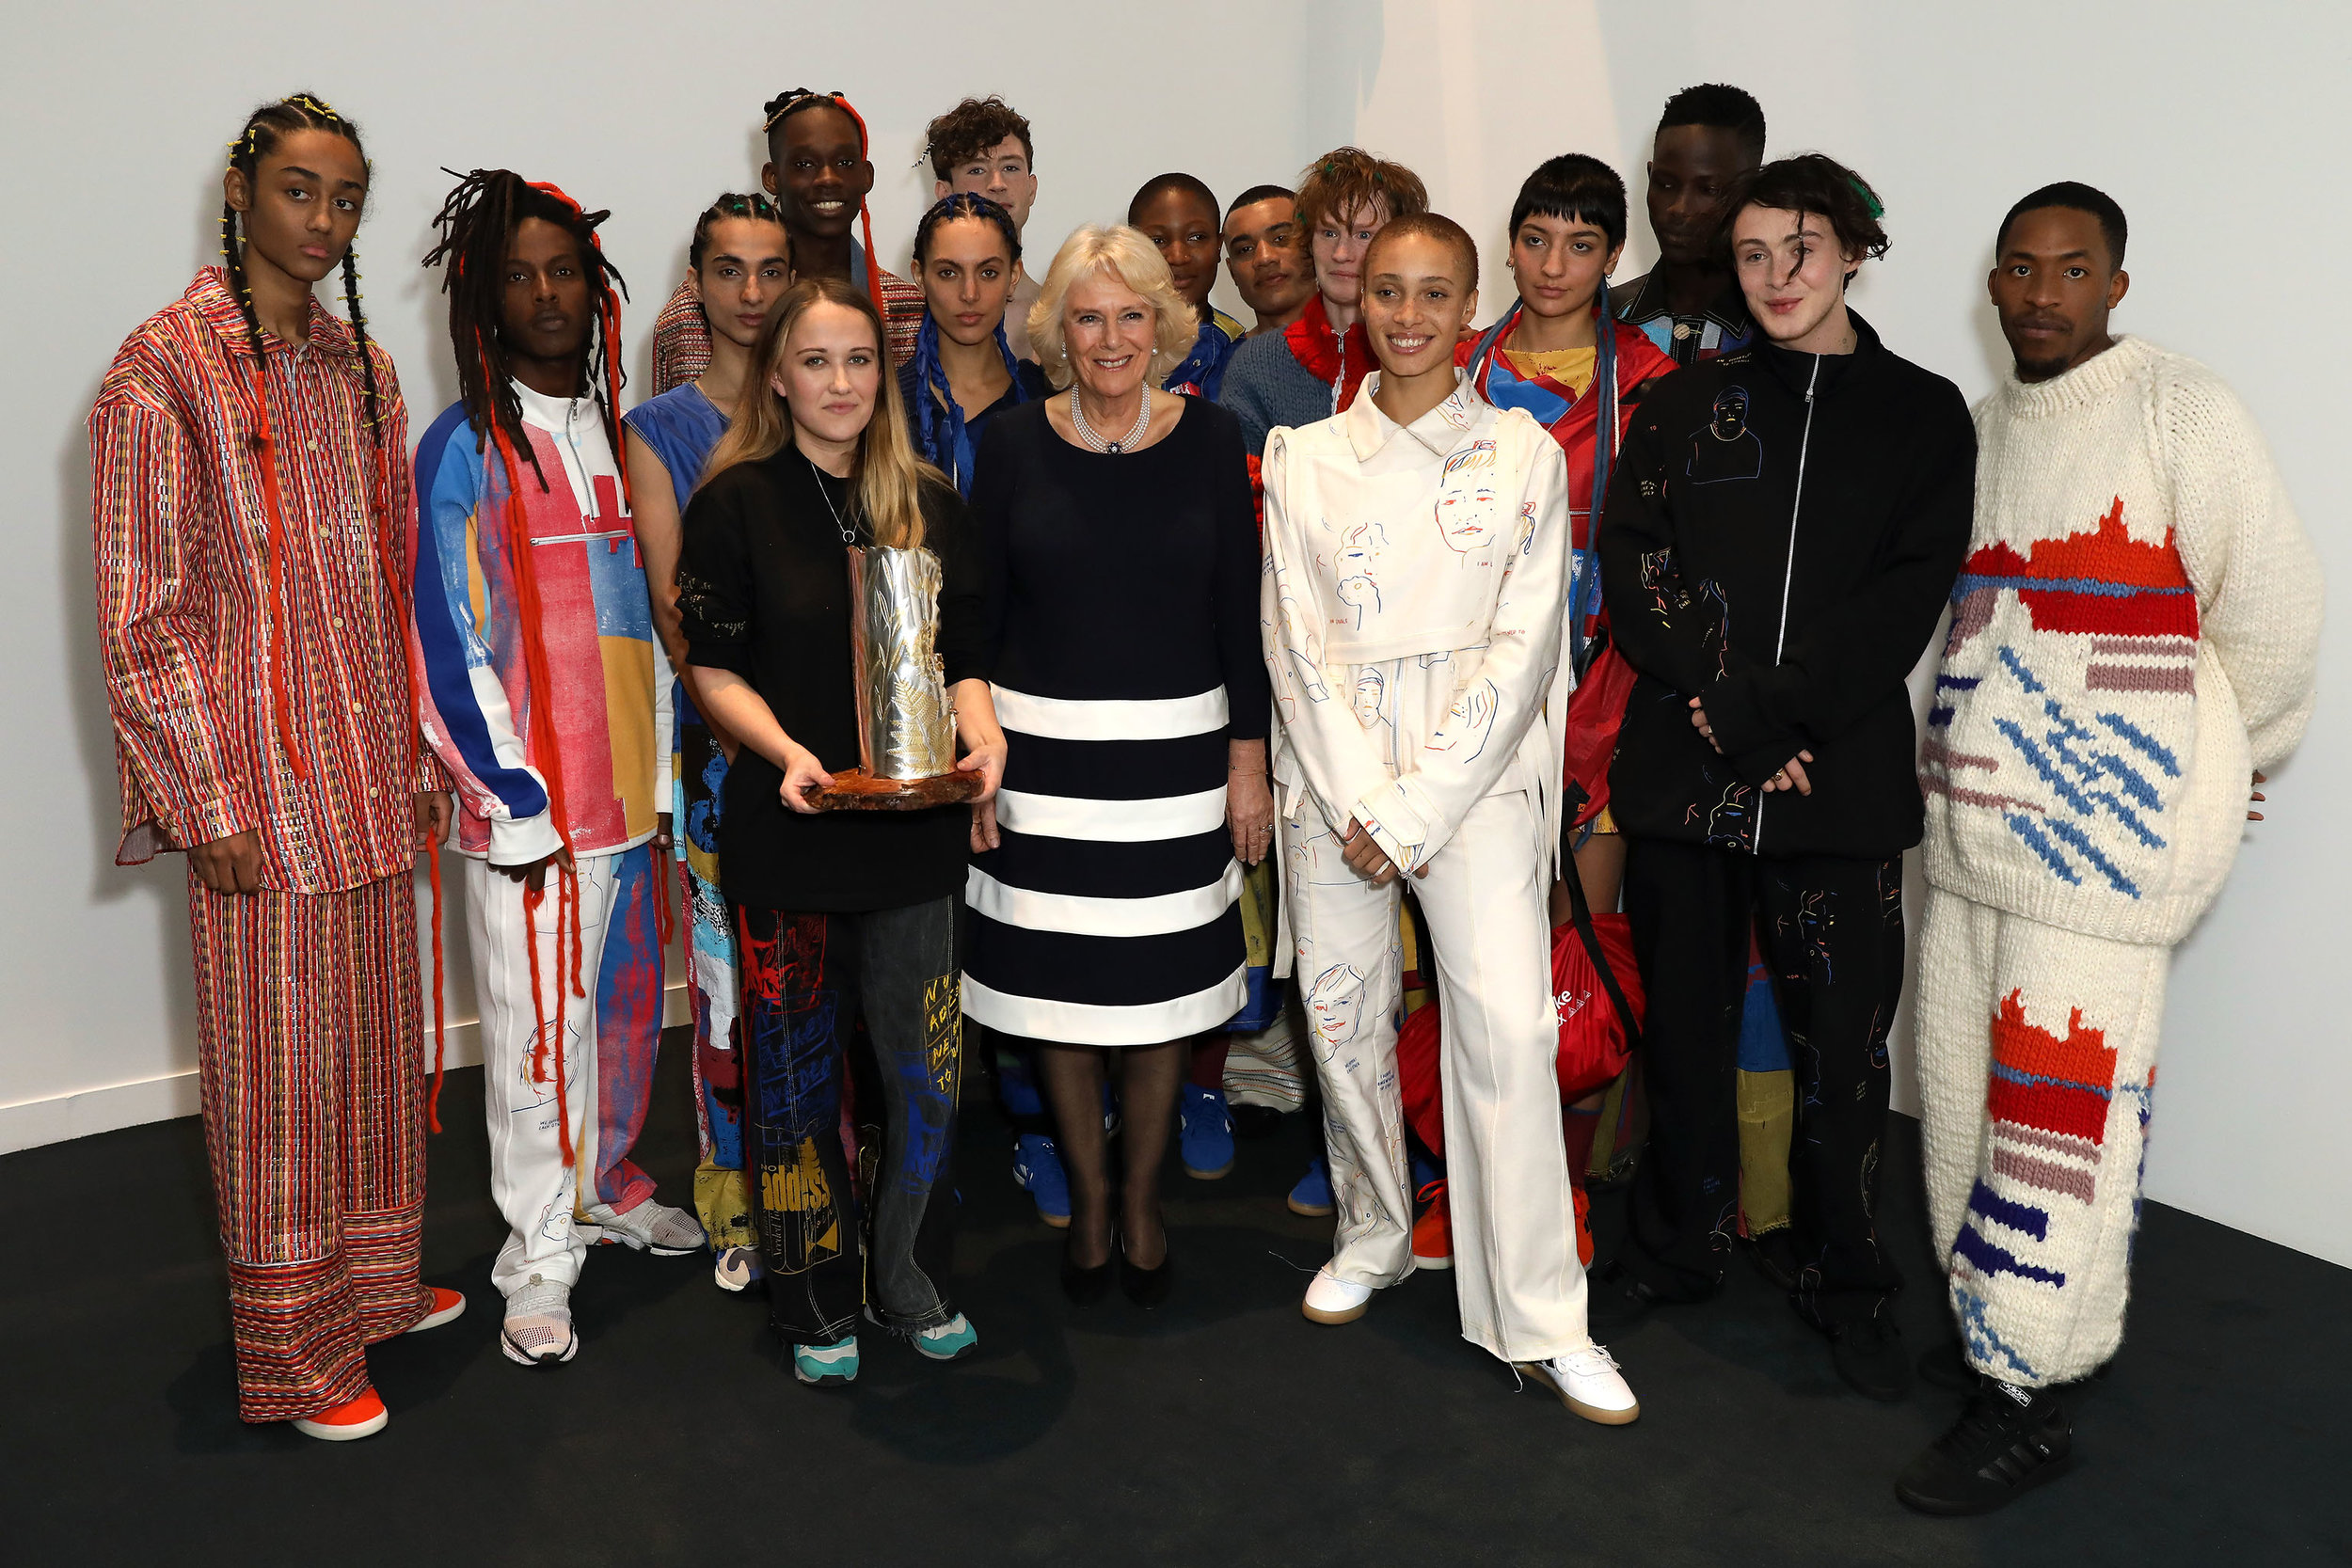 Bethany Williams with The Duchess of Cornwall, Adwoa Aboah and fellow models at London Fashion Week / Photo: Darren Gerrish.